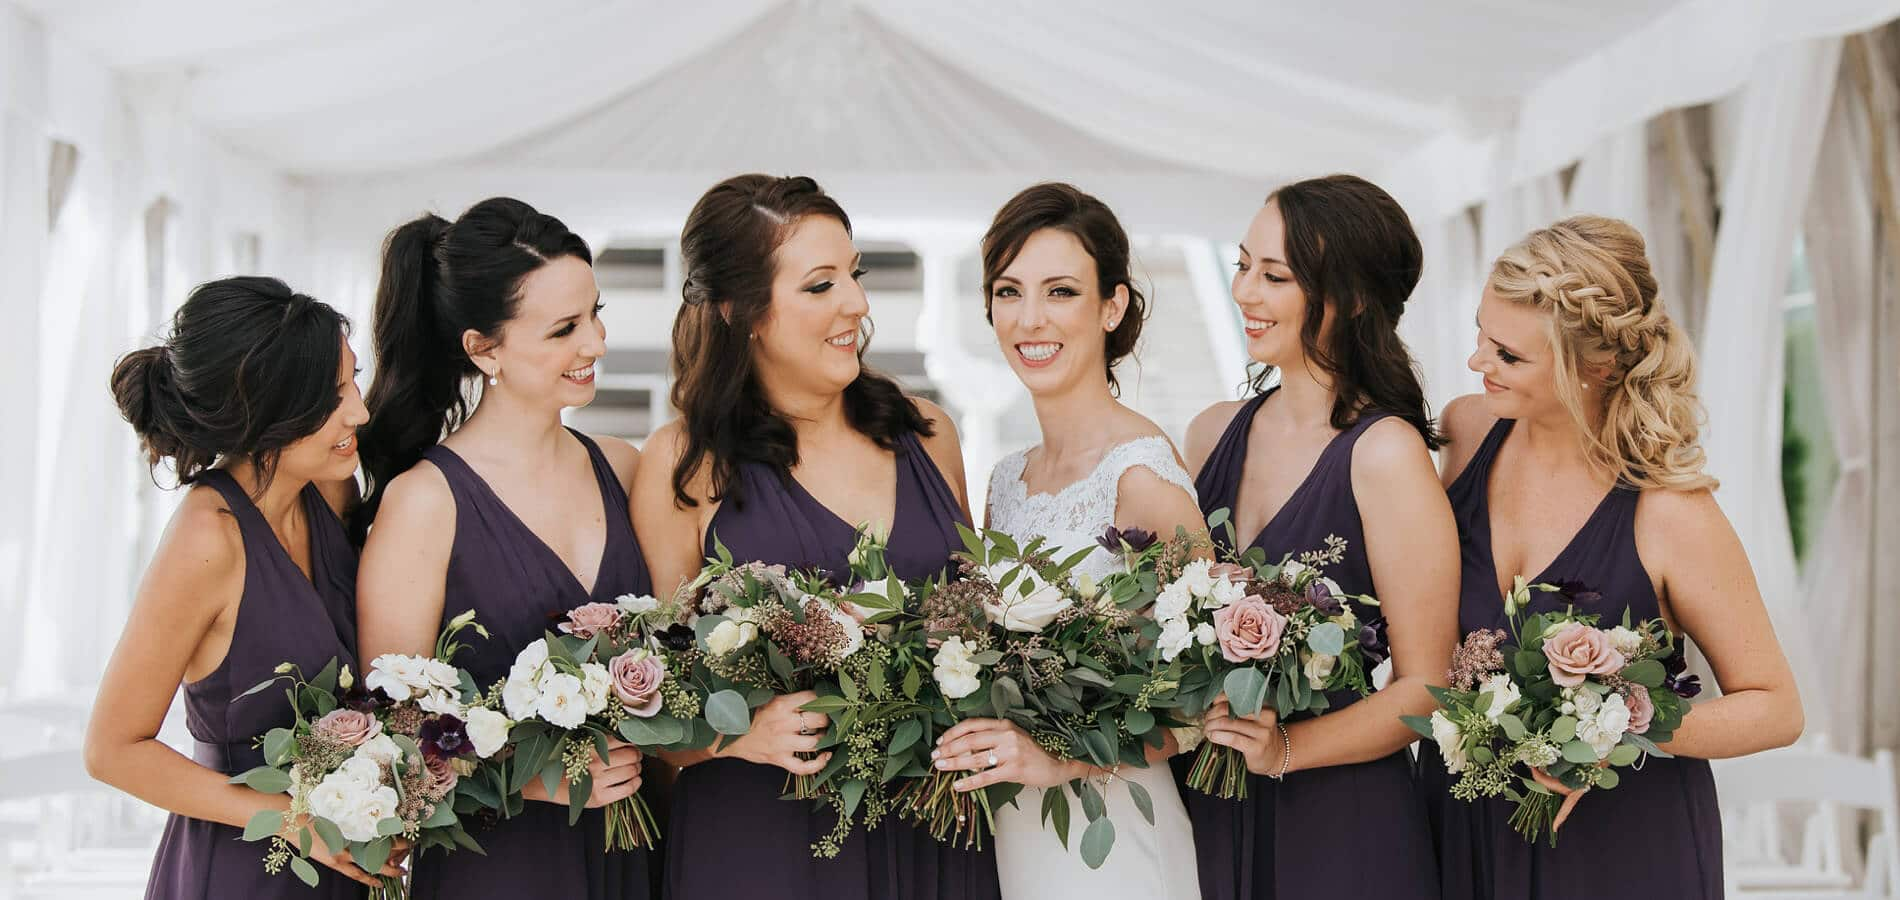 Hero image for Lisa and Jeff's Elegant Rooftop Wedding at Malaparte